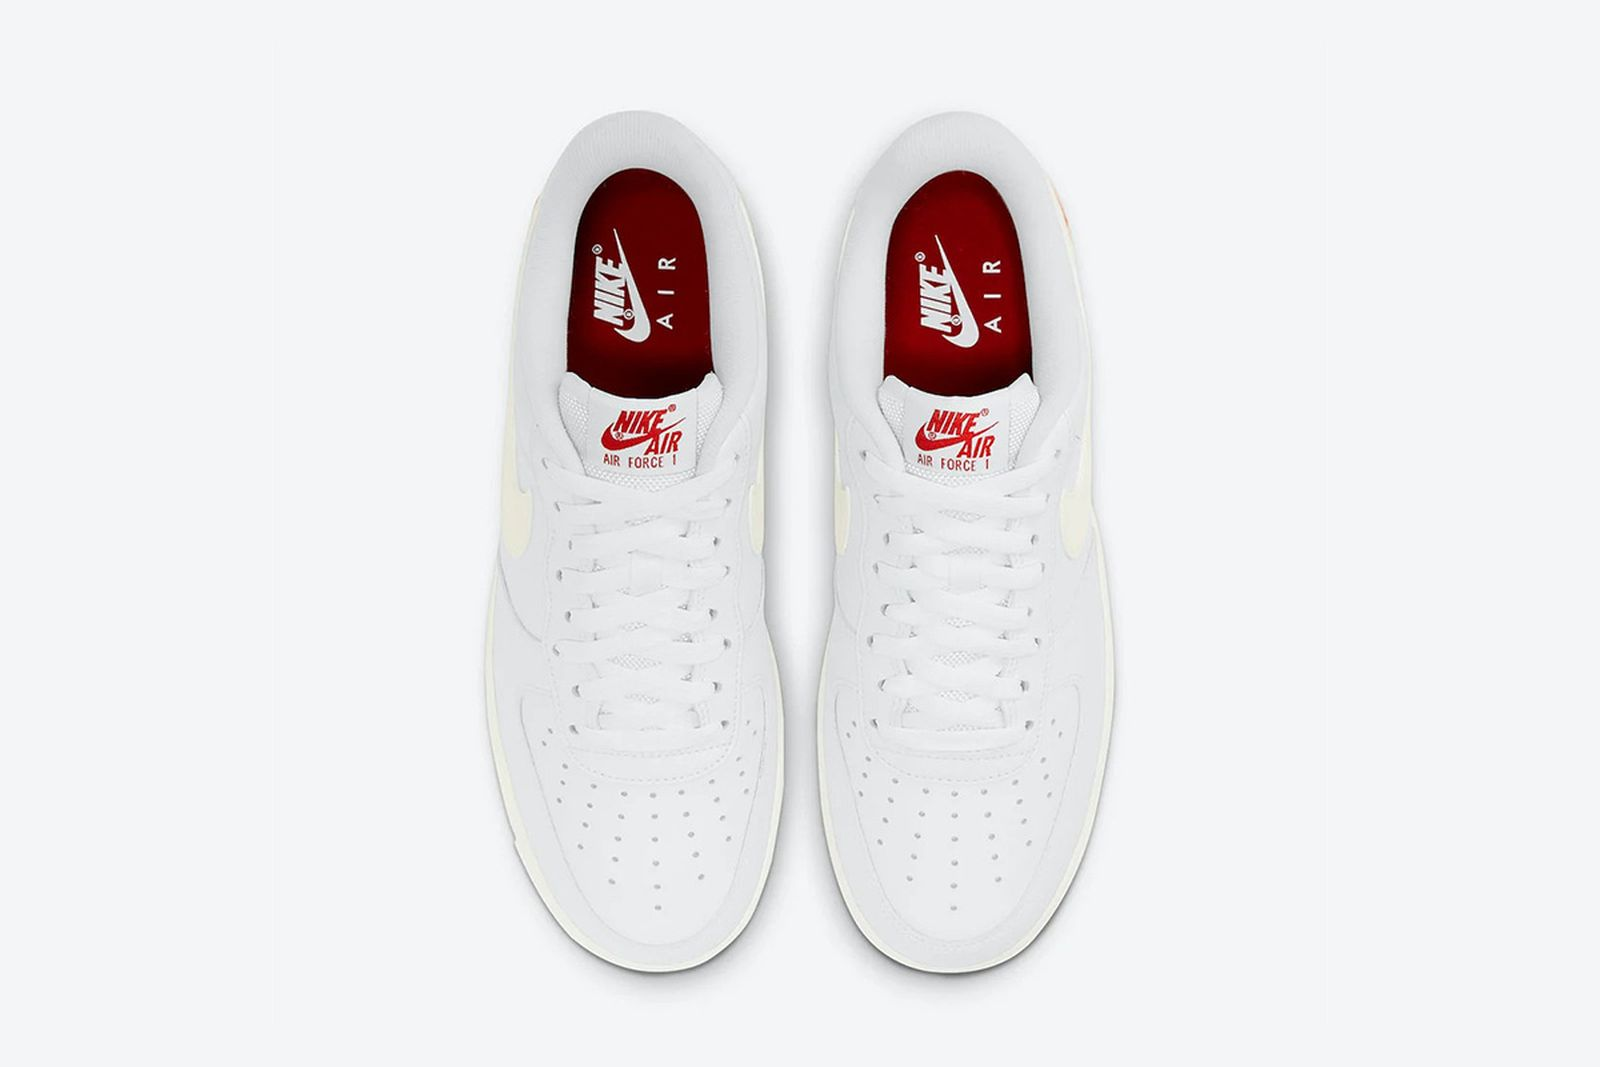 nike-air-force-1-valentines-day-2021-release-date-price-04